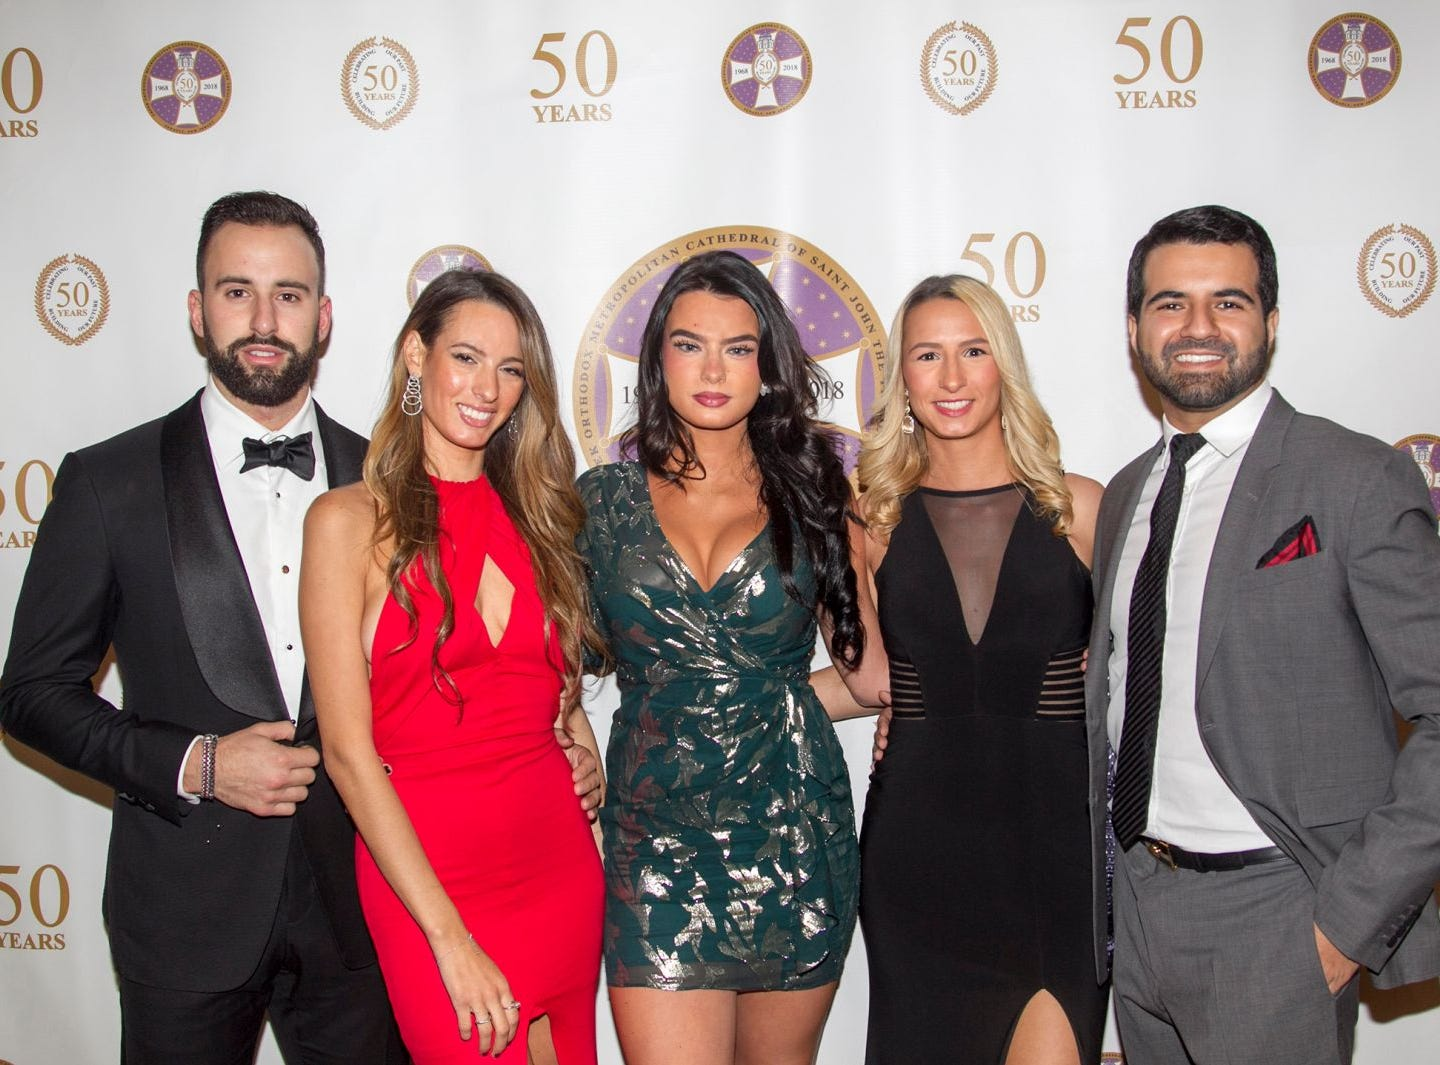 Justin Selman, Eleni Meneve, Xanthi Meneve, Arsta Meneve, Jahan Khubani. Saint John the Theologian 50th Anniversary gala Dinner at The Venetian in Garfield. 10/04/2018